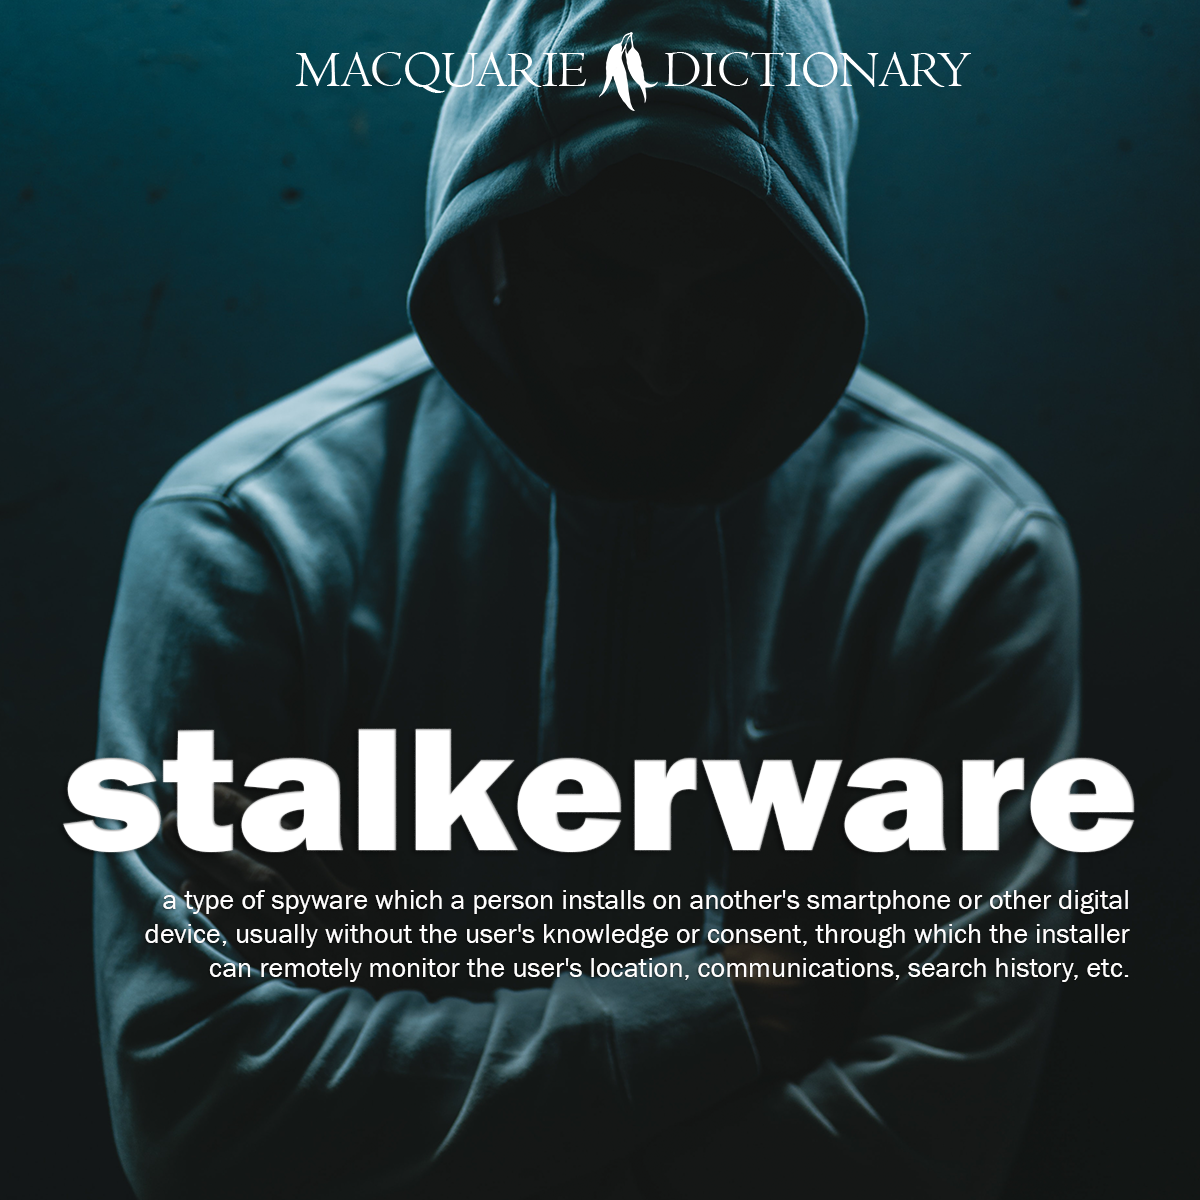 stalkerware - a type of spyware which a person installs on another's smartphone or other digital device, usually without the user's knowledge or consent, through which the installer can remotely monitor the user's location, communications, search history, etc.